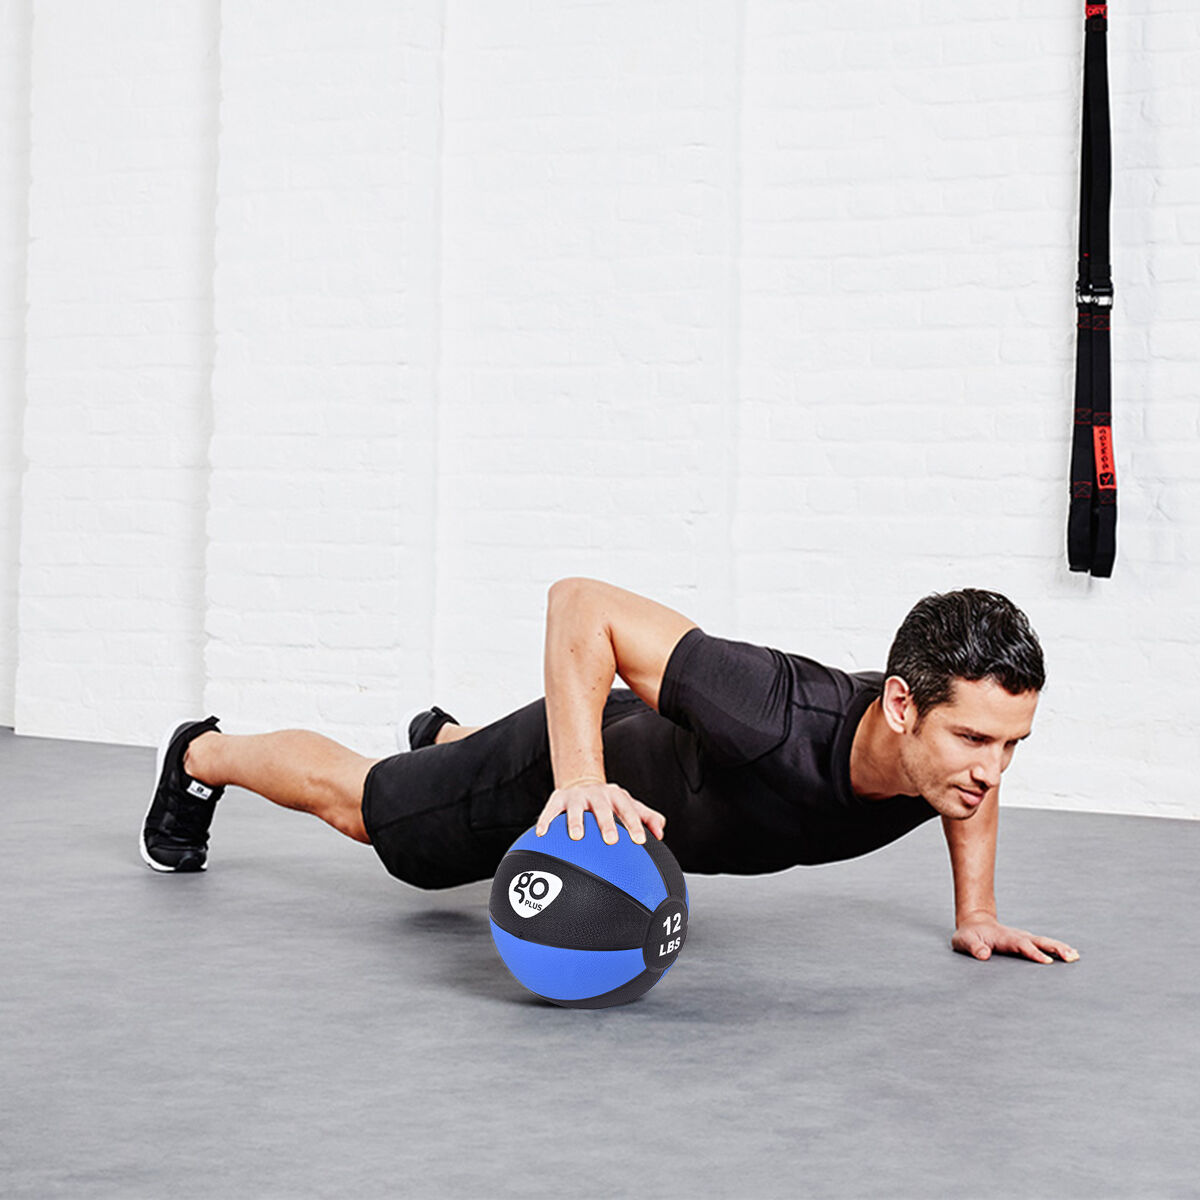 Fitness-Weighted-Medicine-Ball-Wall-Balance-Training-Muscle-Build-4-6-8-10-12lbs thumbnail 15